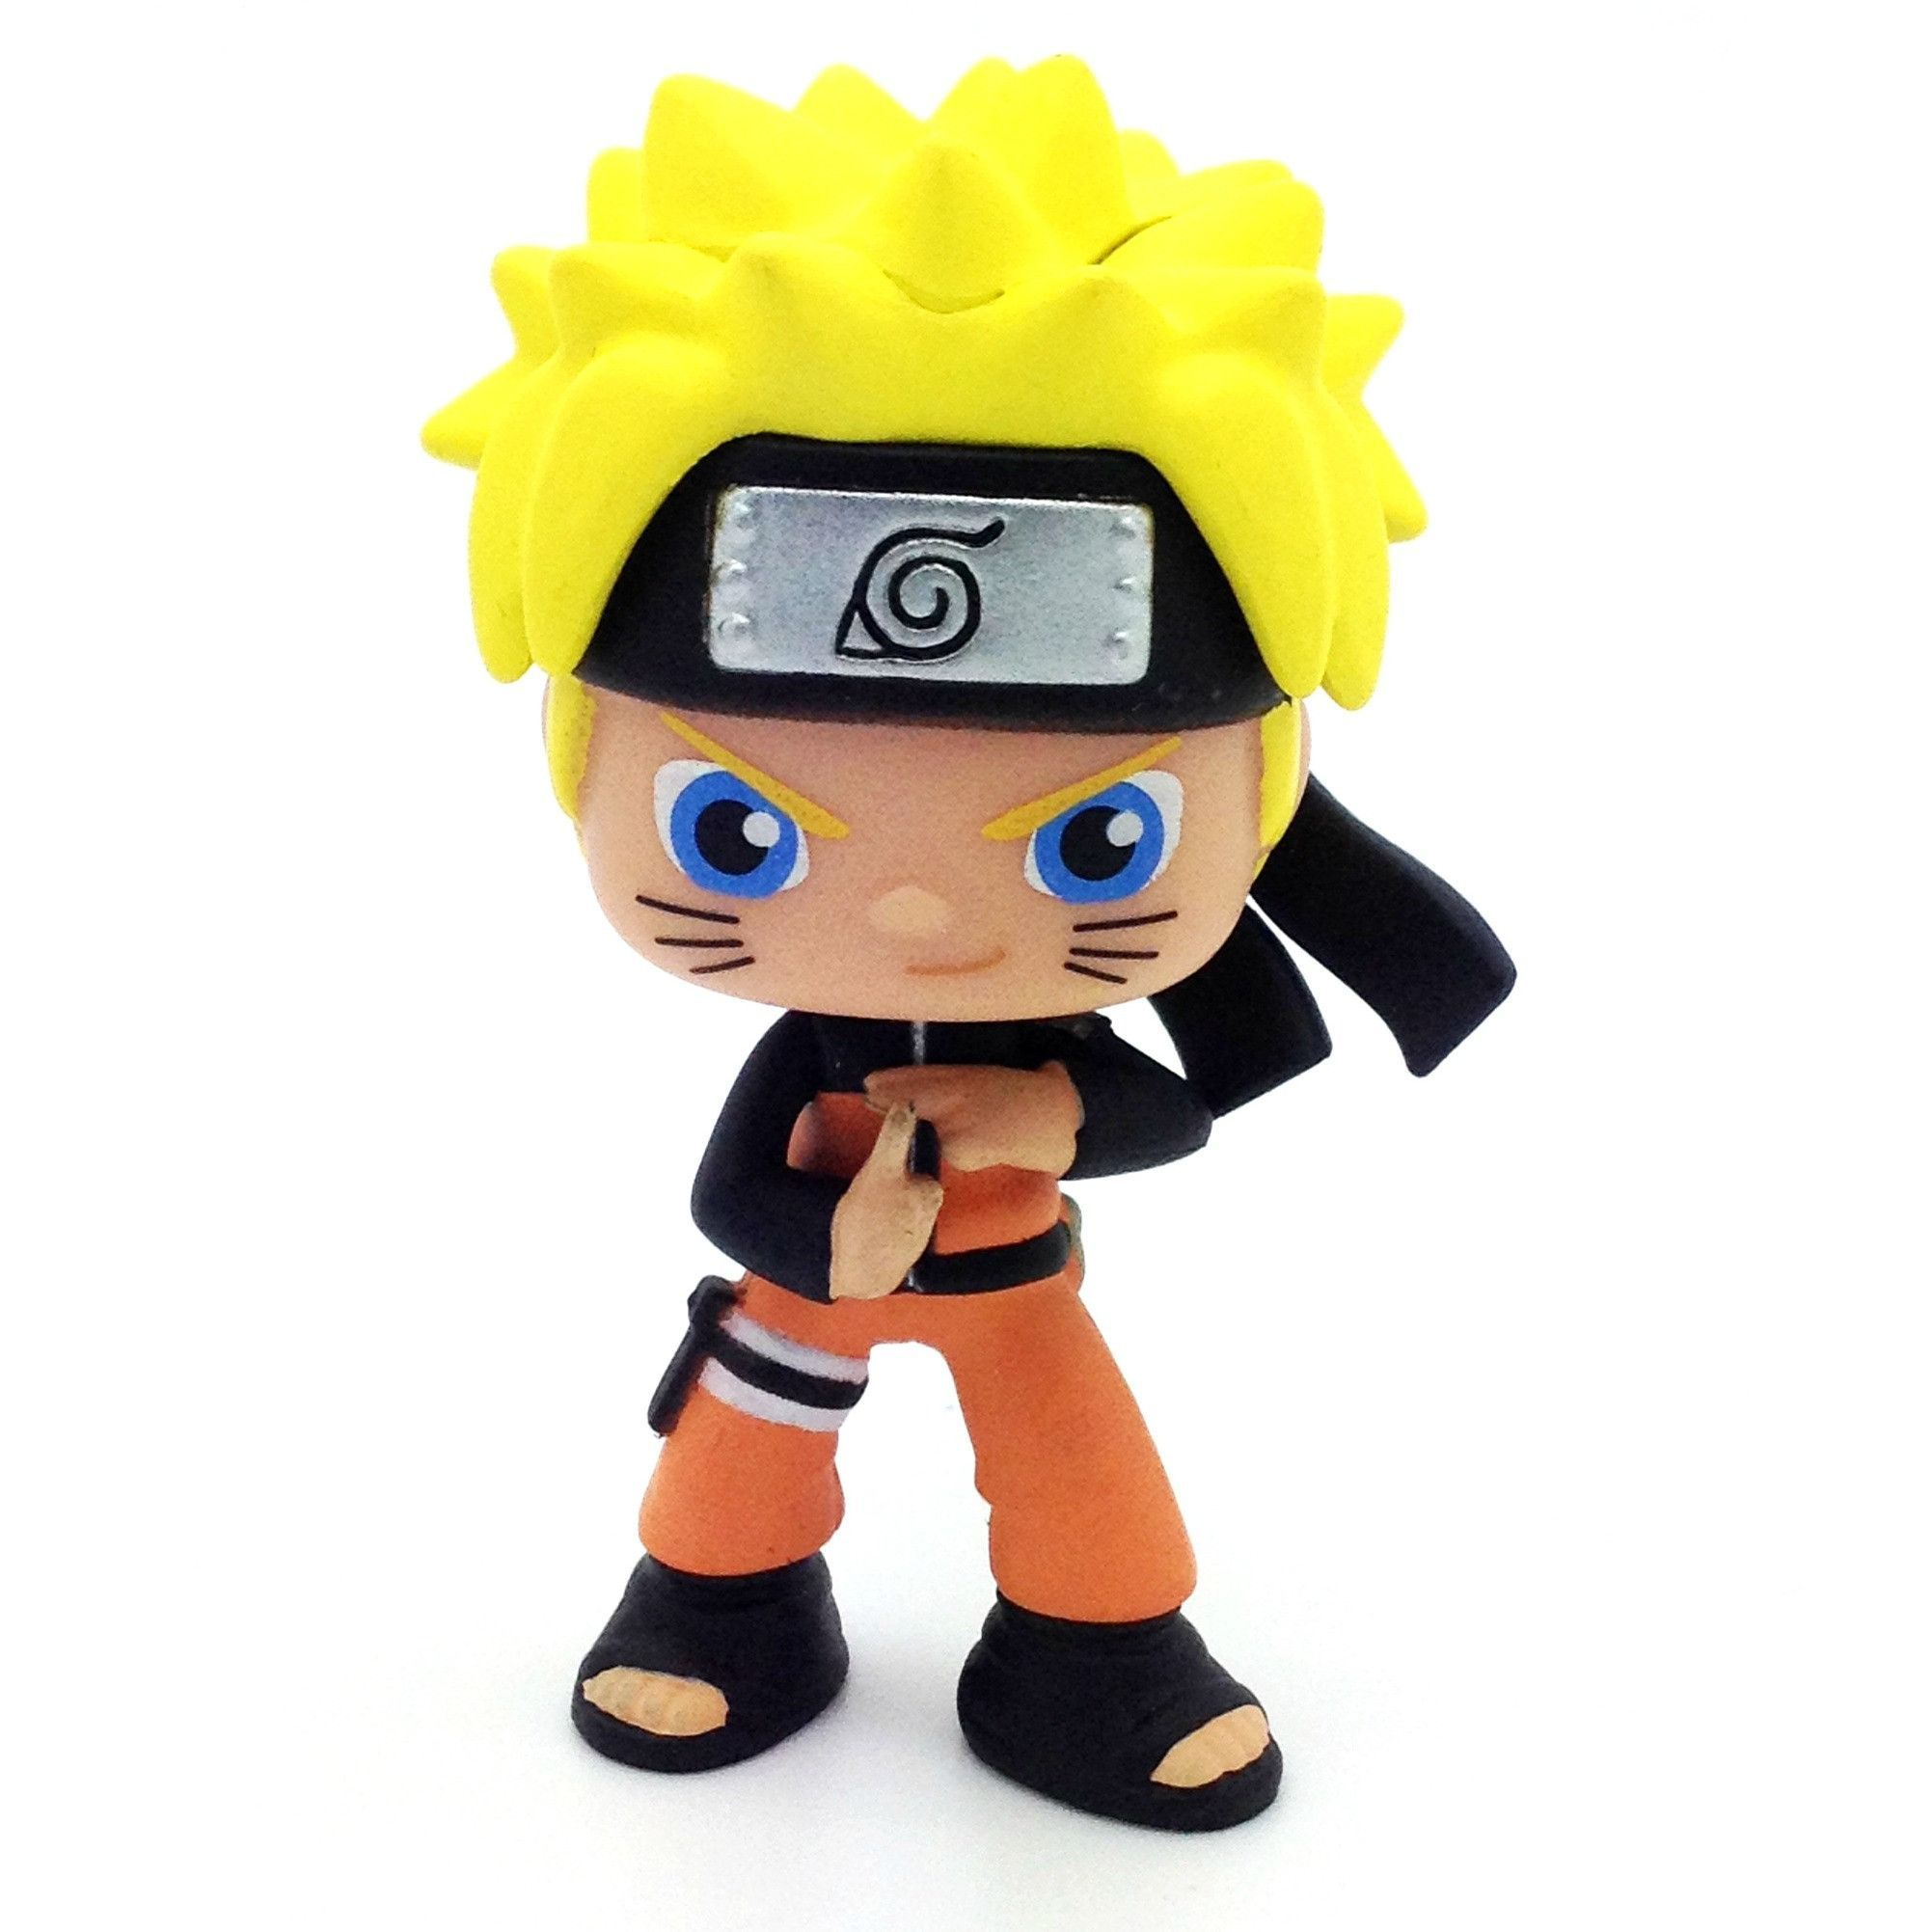 wp blinds blind privesci mascot shippuden naruto blindbox file box pro figurice anime